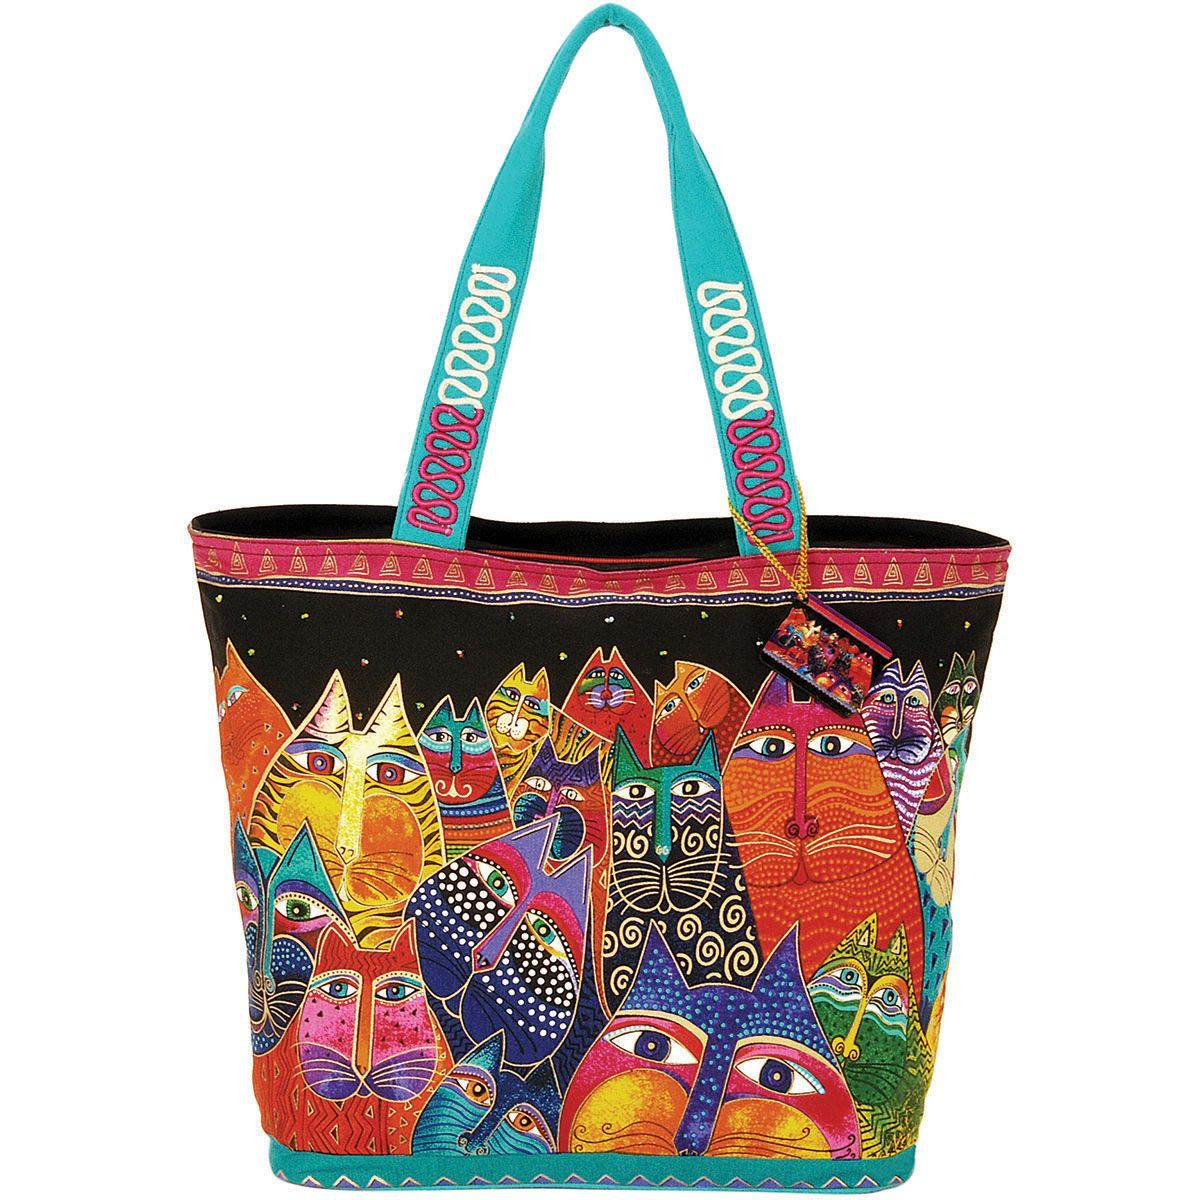 Laurel Burch Shoulder Tote Zipper Top 19.5x6.75x15 - Fantasticats #zippertop